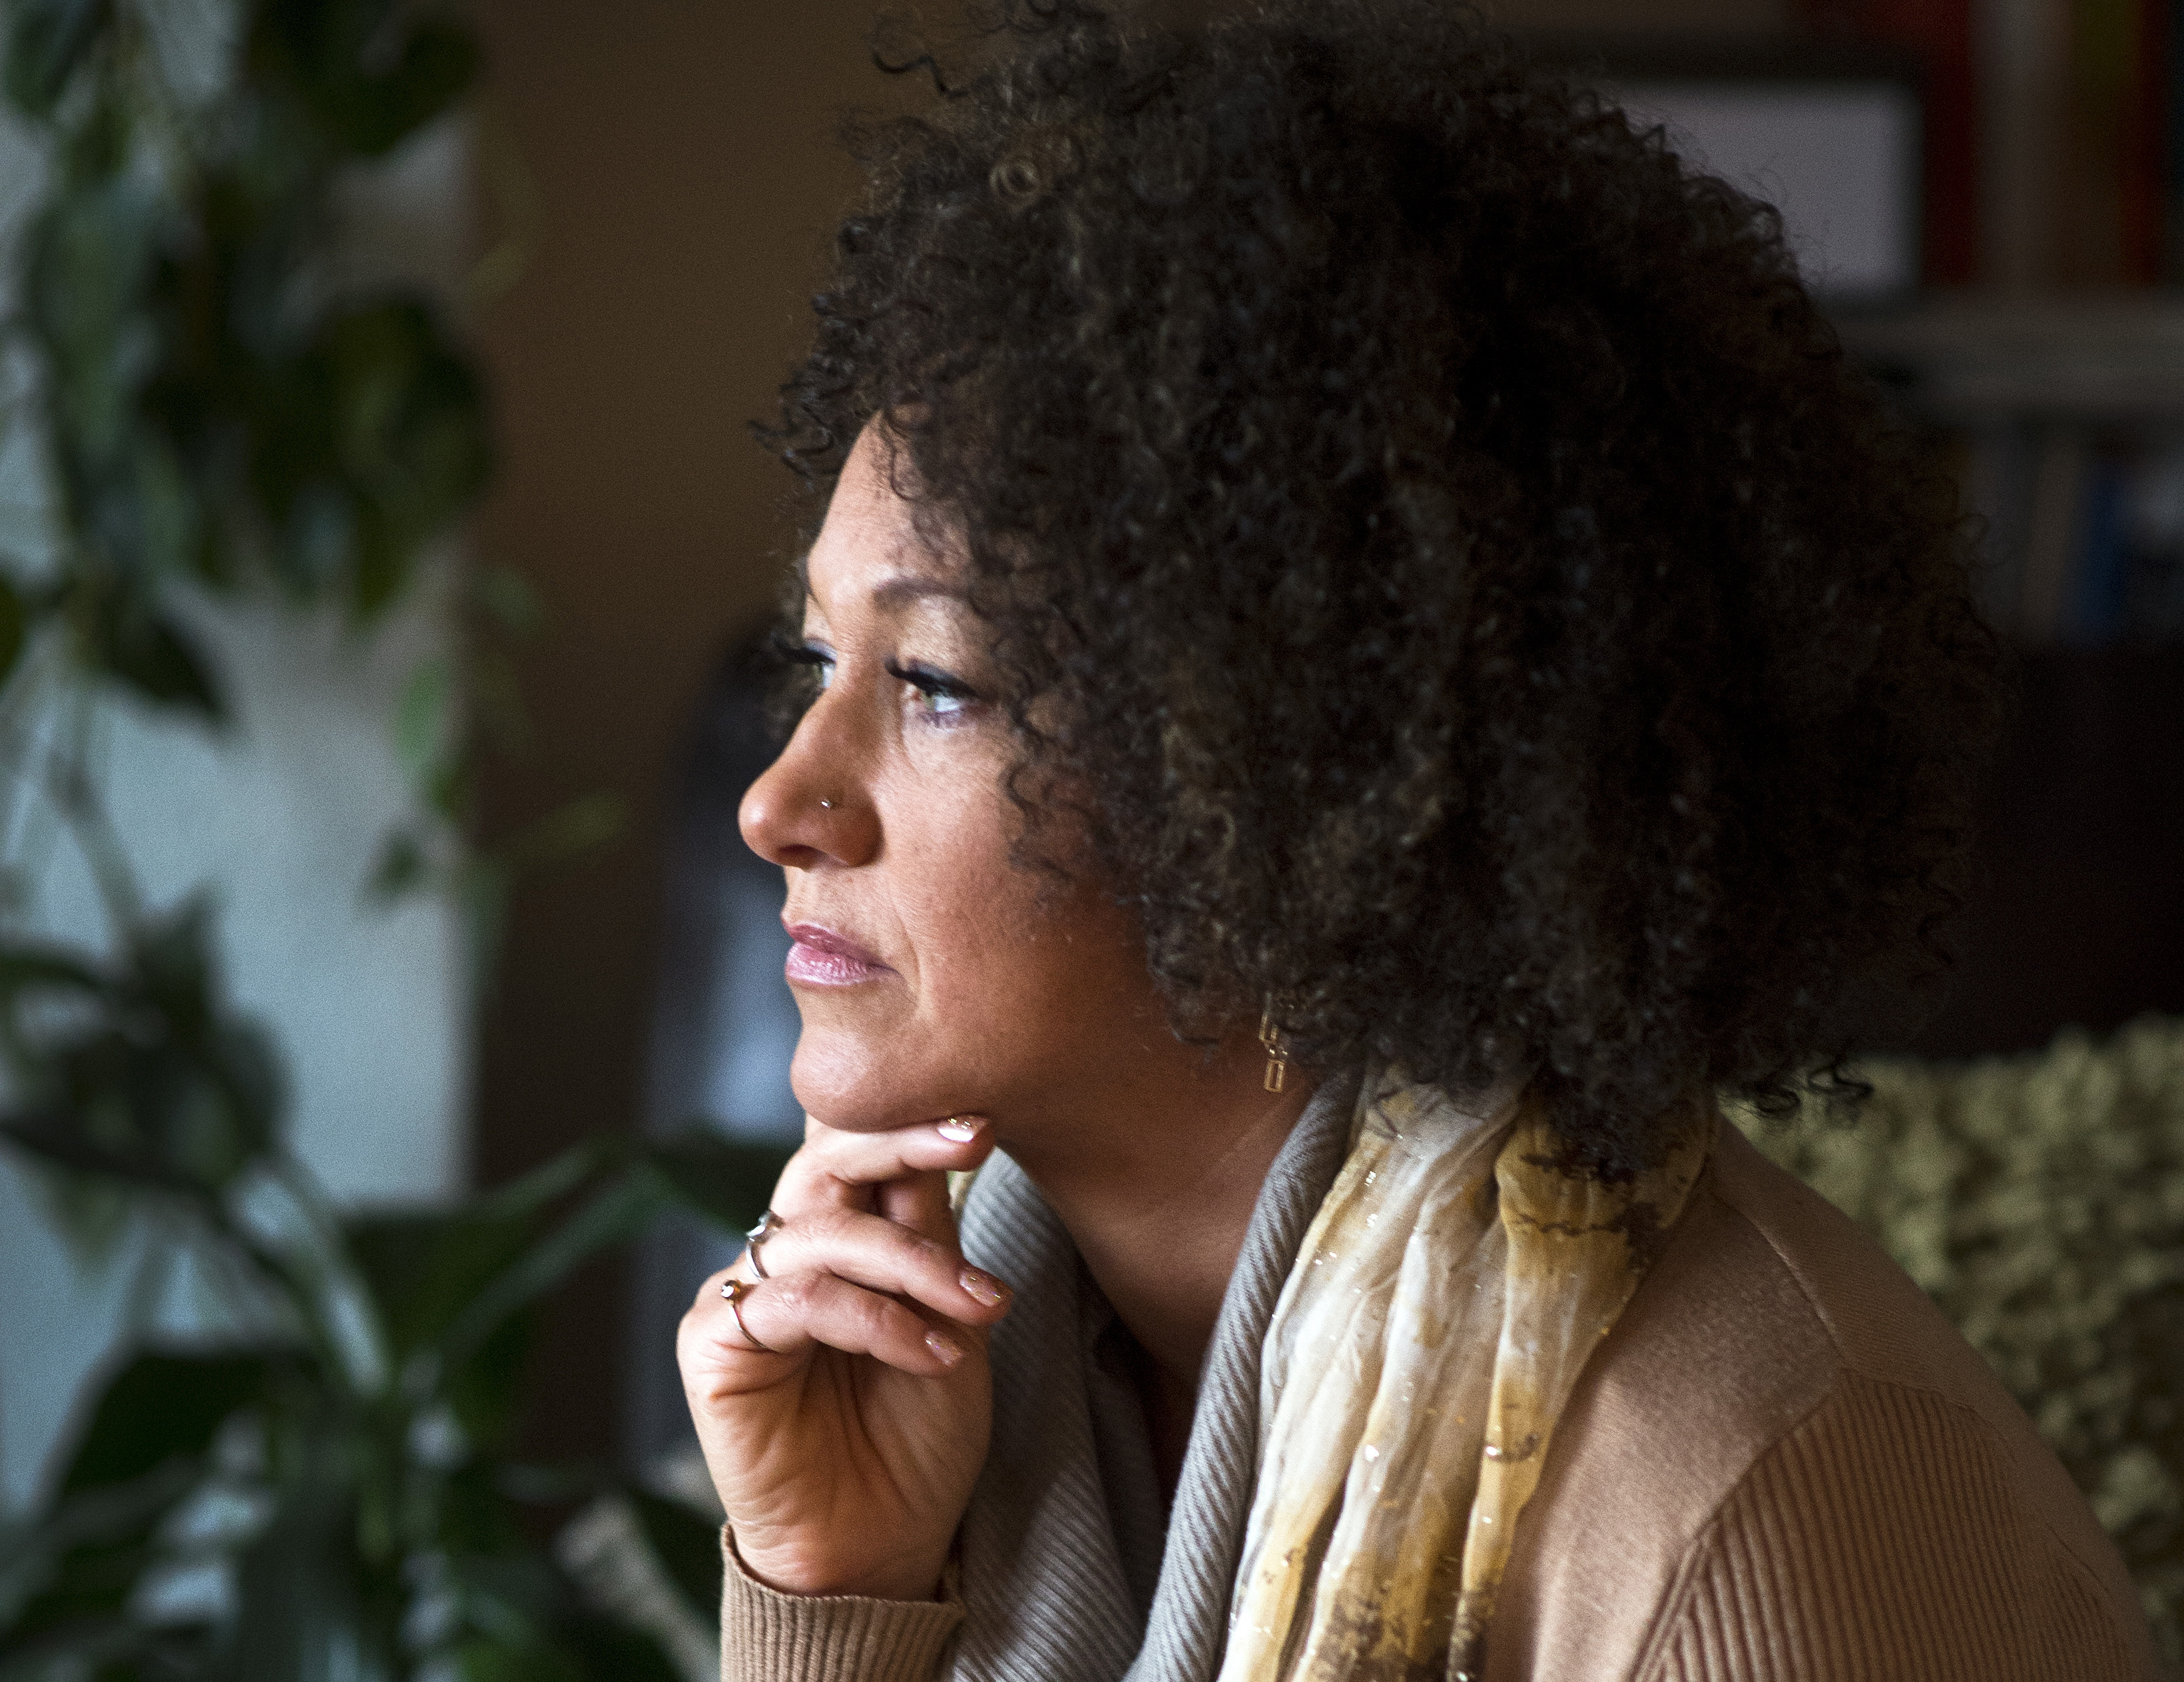 Rachel Dolezal at her home in Spokane, Wash., on March 2, 2015.